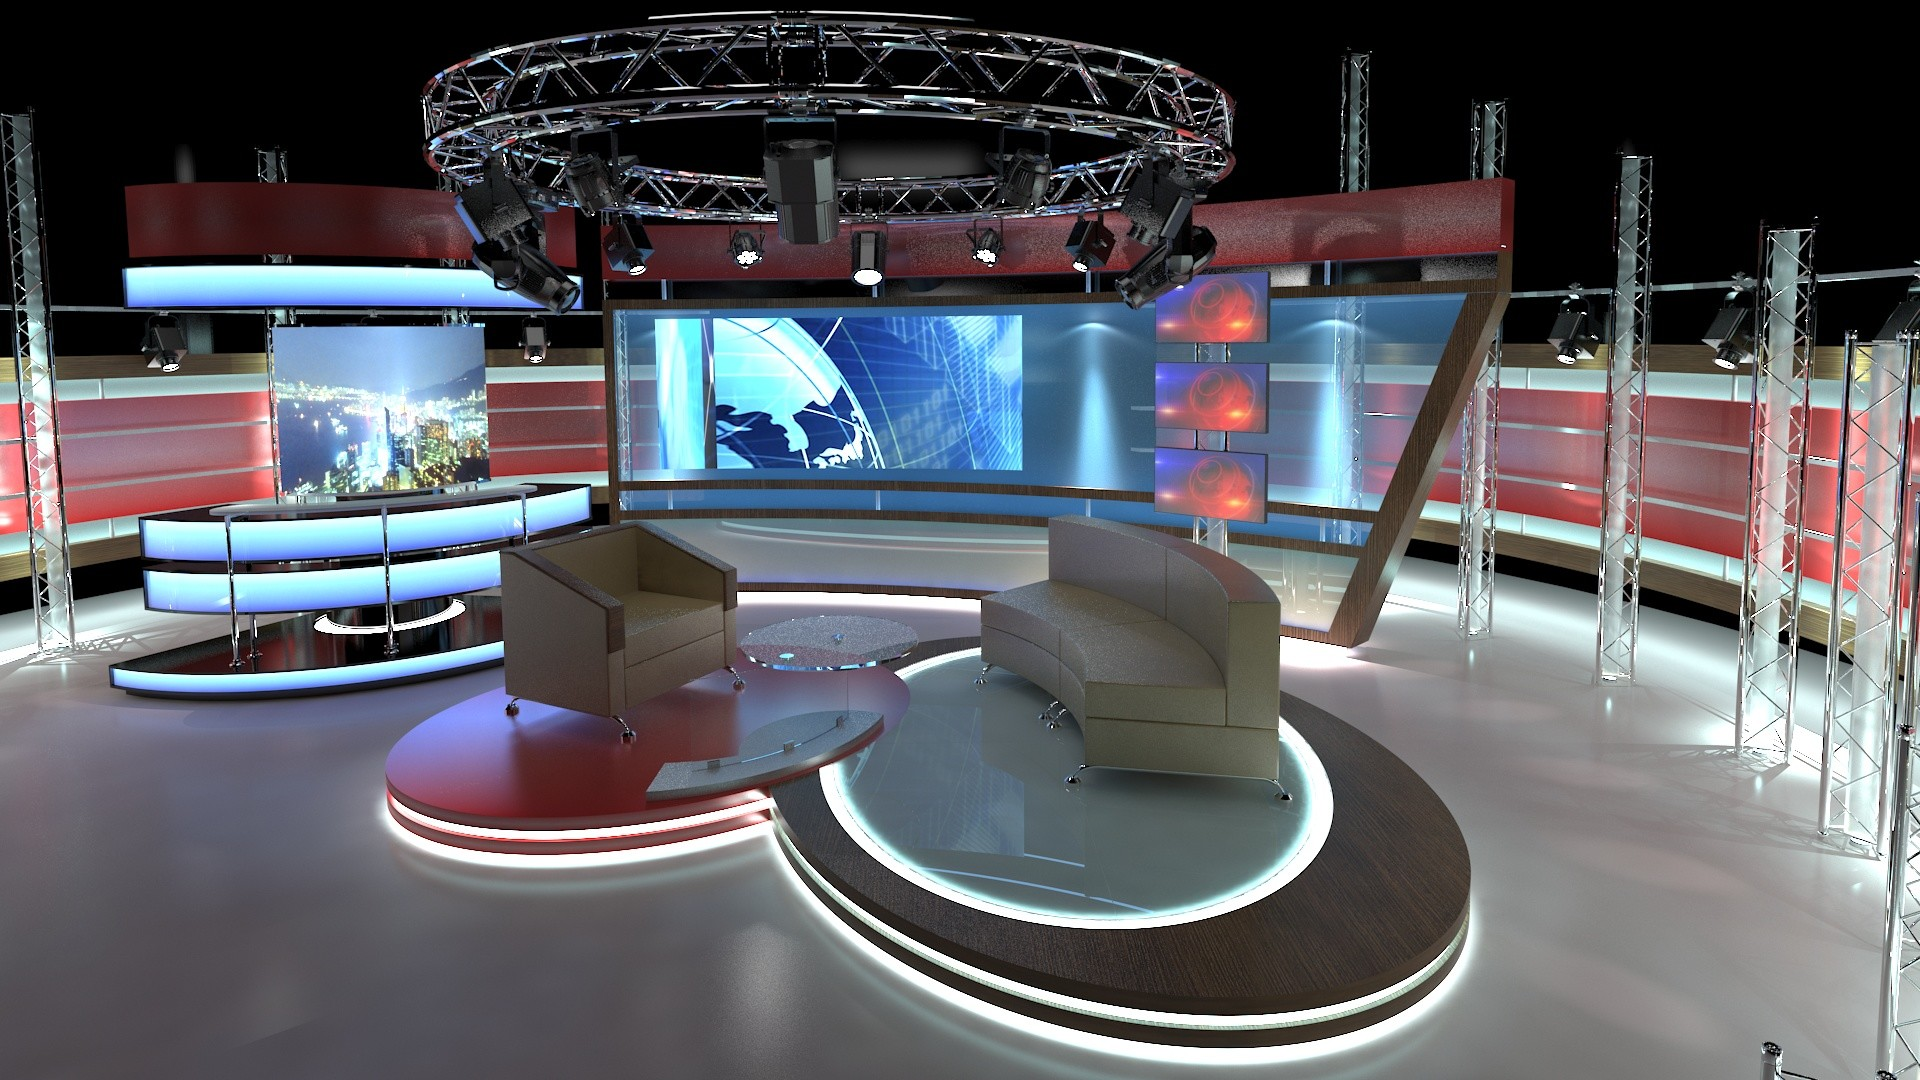 ArtStation - 3D Virtual TV Studio Chat Set 1, aker Studio